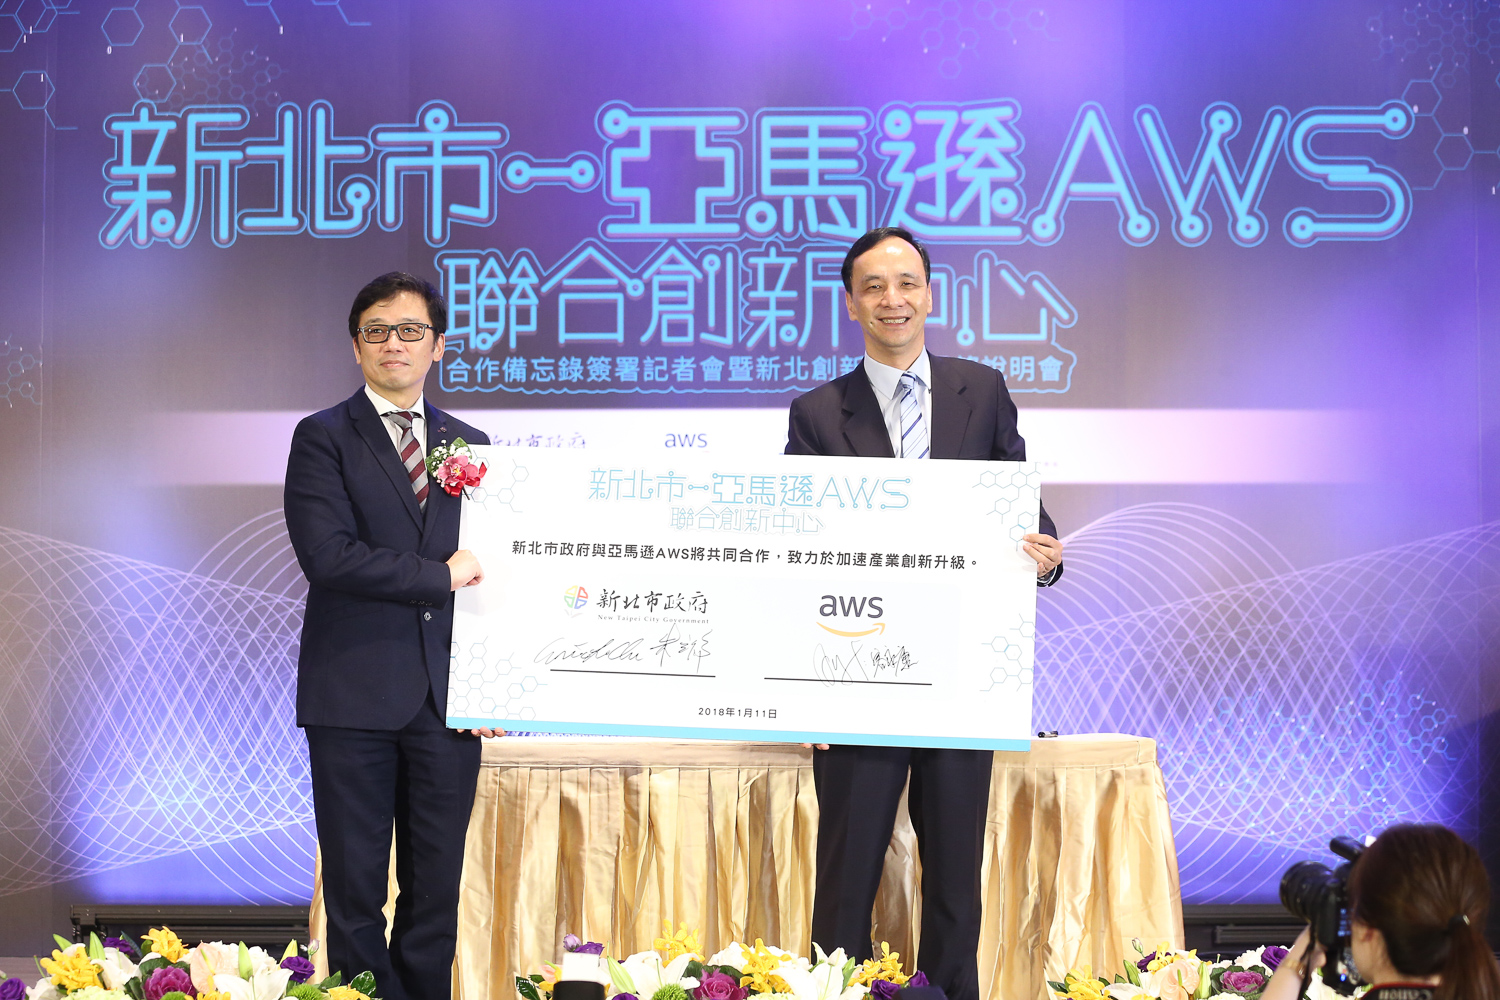 New Taipei Mayor Eric Chu (right) and Alex Yung, corporate vice president of Amazon Web Services, hold up a placard showing a signed agreement between the city government and AWS on jointly establishing an internet innovation center Jan. 11 in the northern Taiwan metropolis. (Courtesy of NTCG)